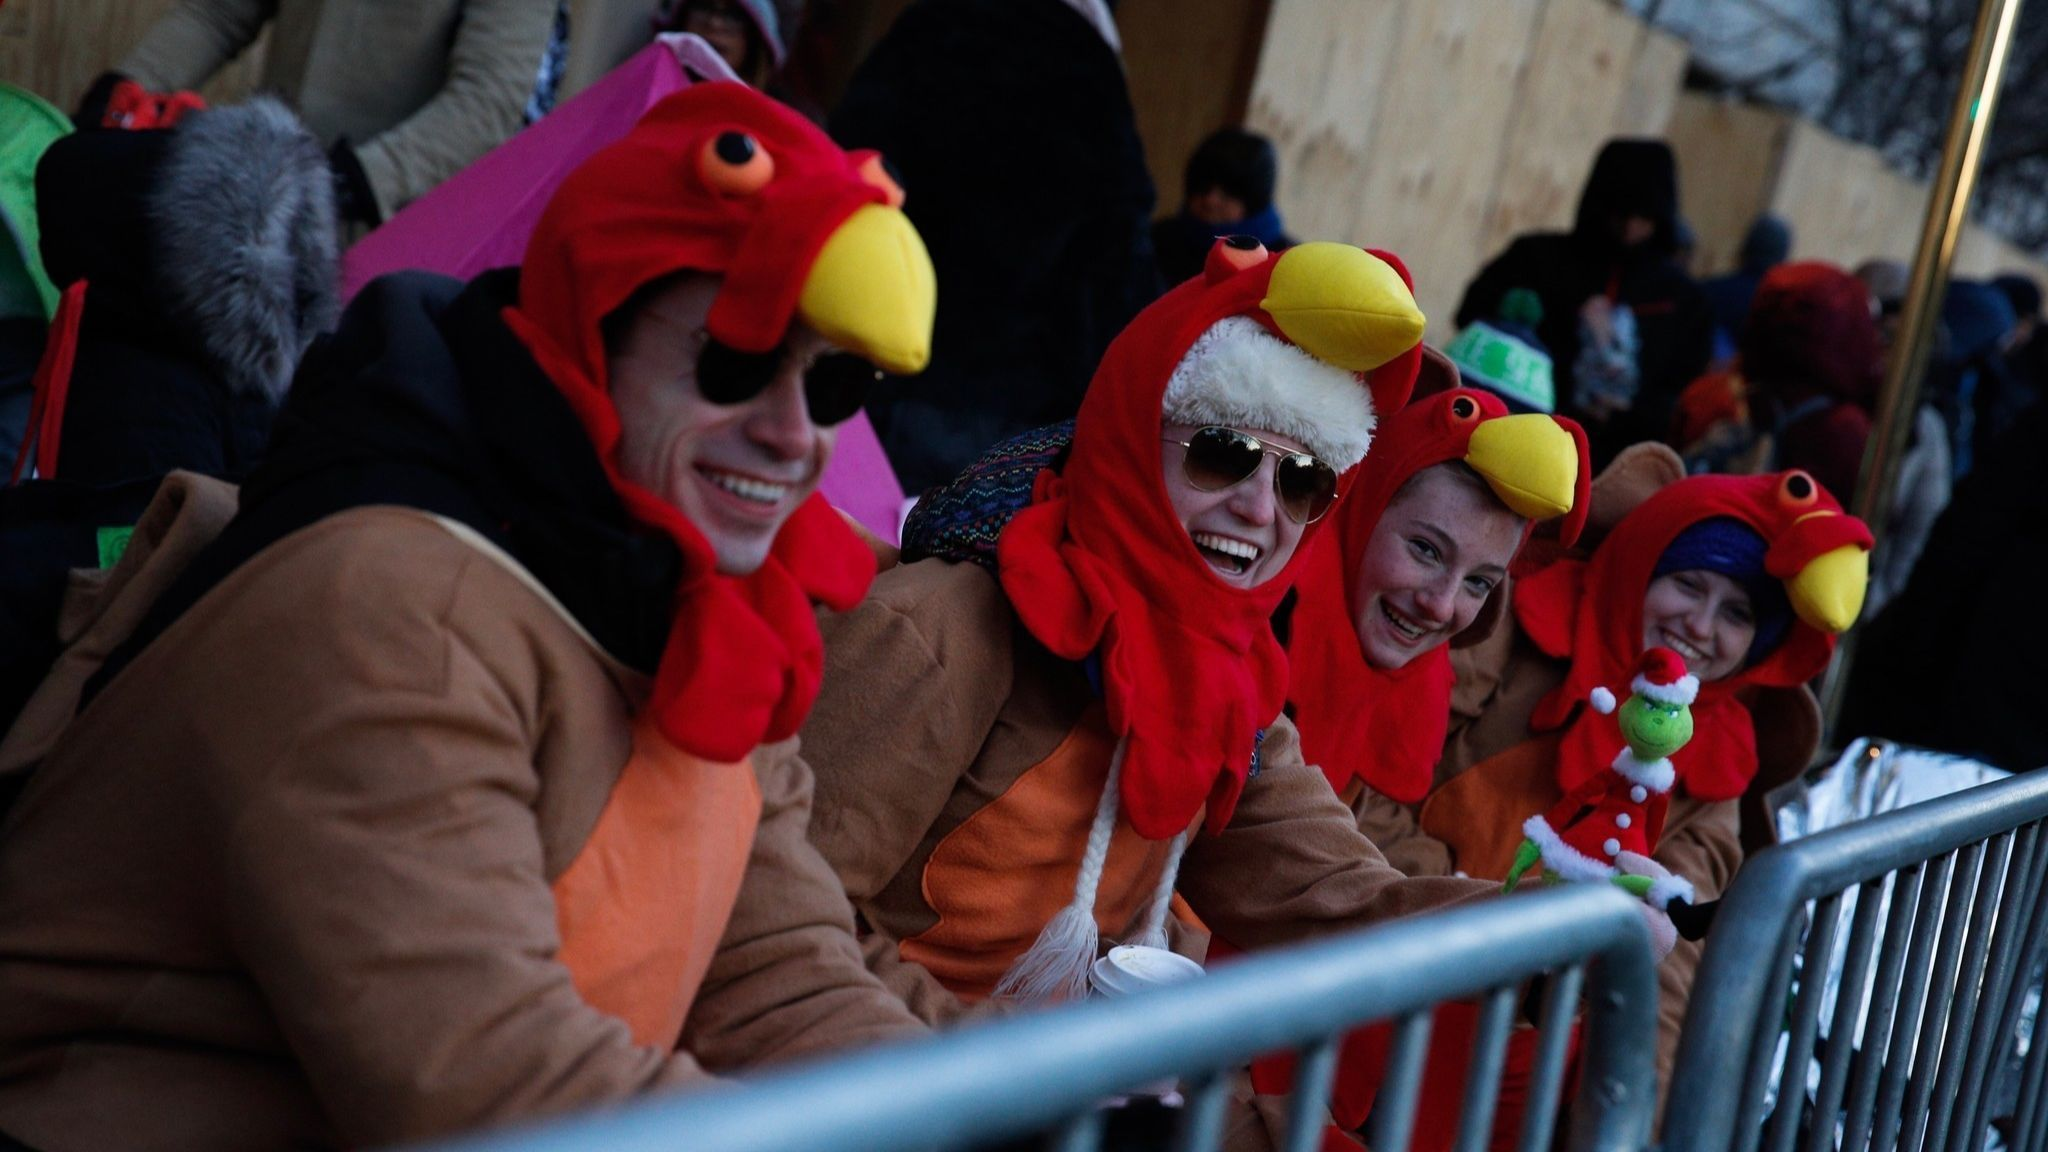 People try to stay warm before the 92nd annual Macy's Thanksgiving Day Parade in New York, Thursday,